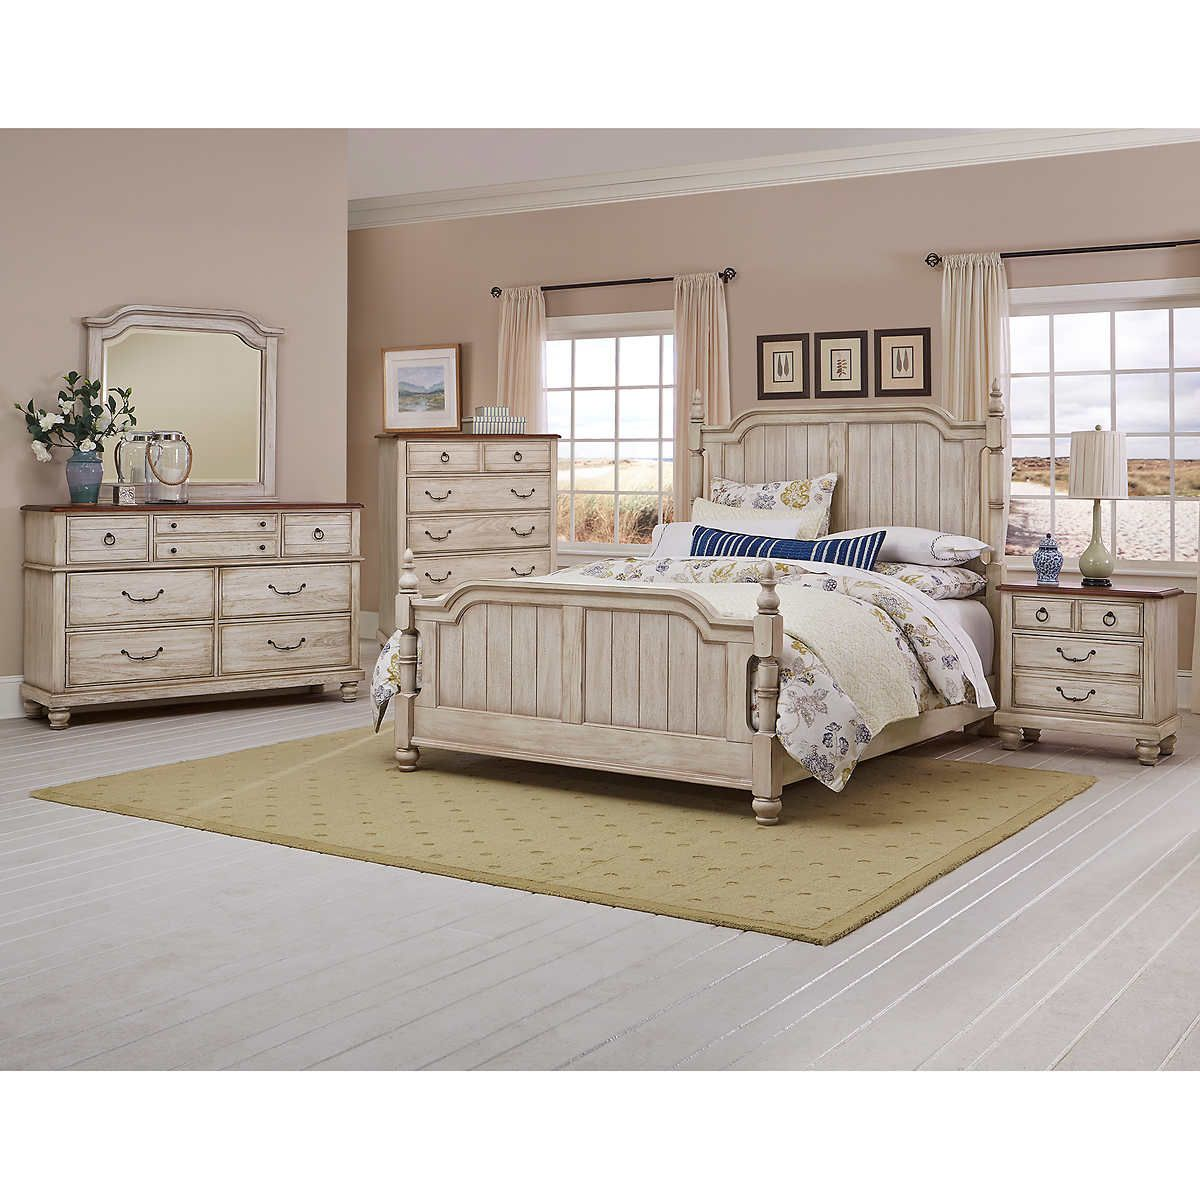 Morena Bedroom Furniture Collection   Best Interior House Paint Check More  At Http://